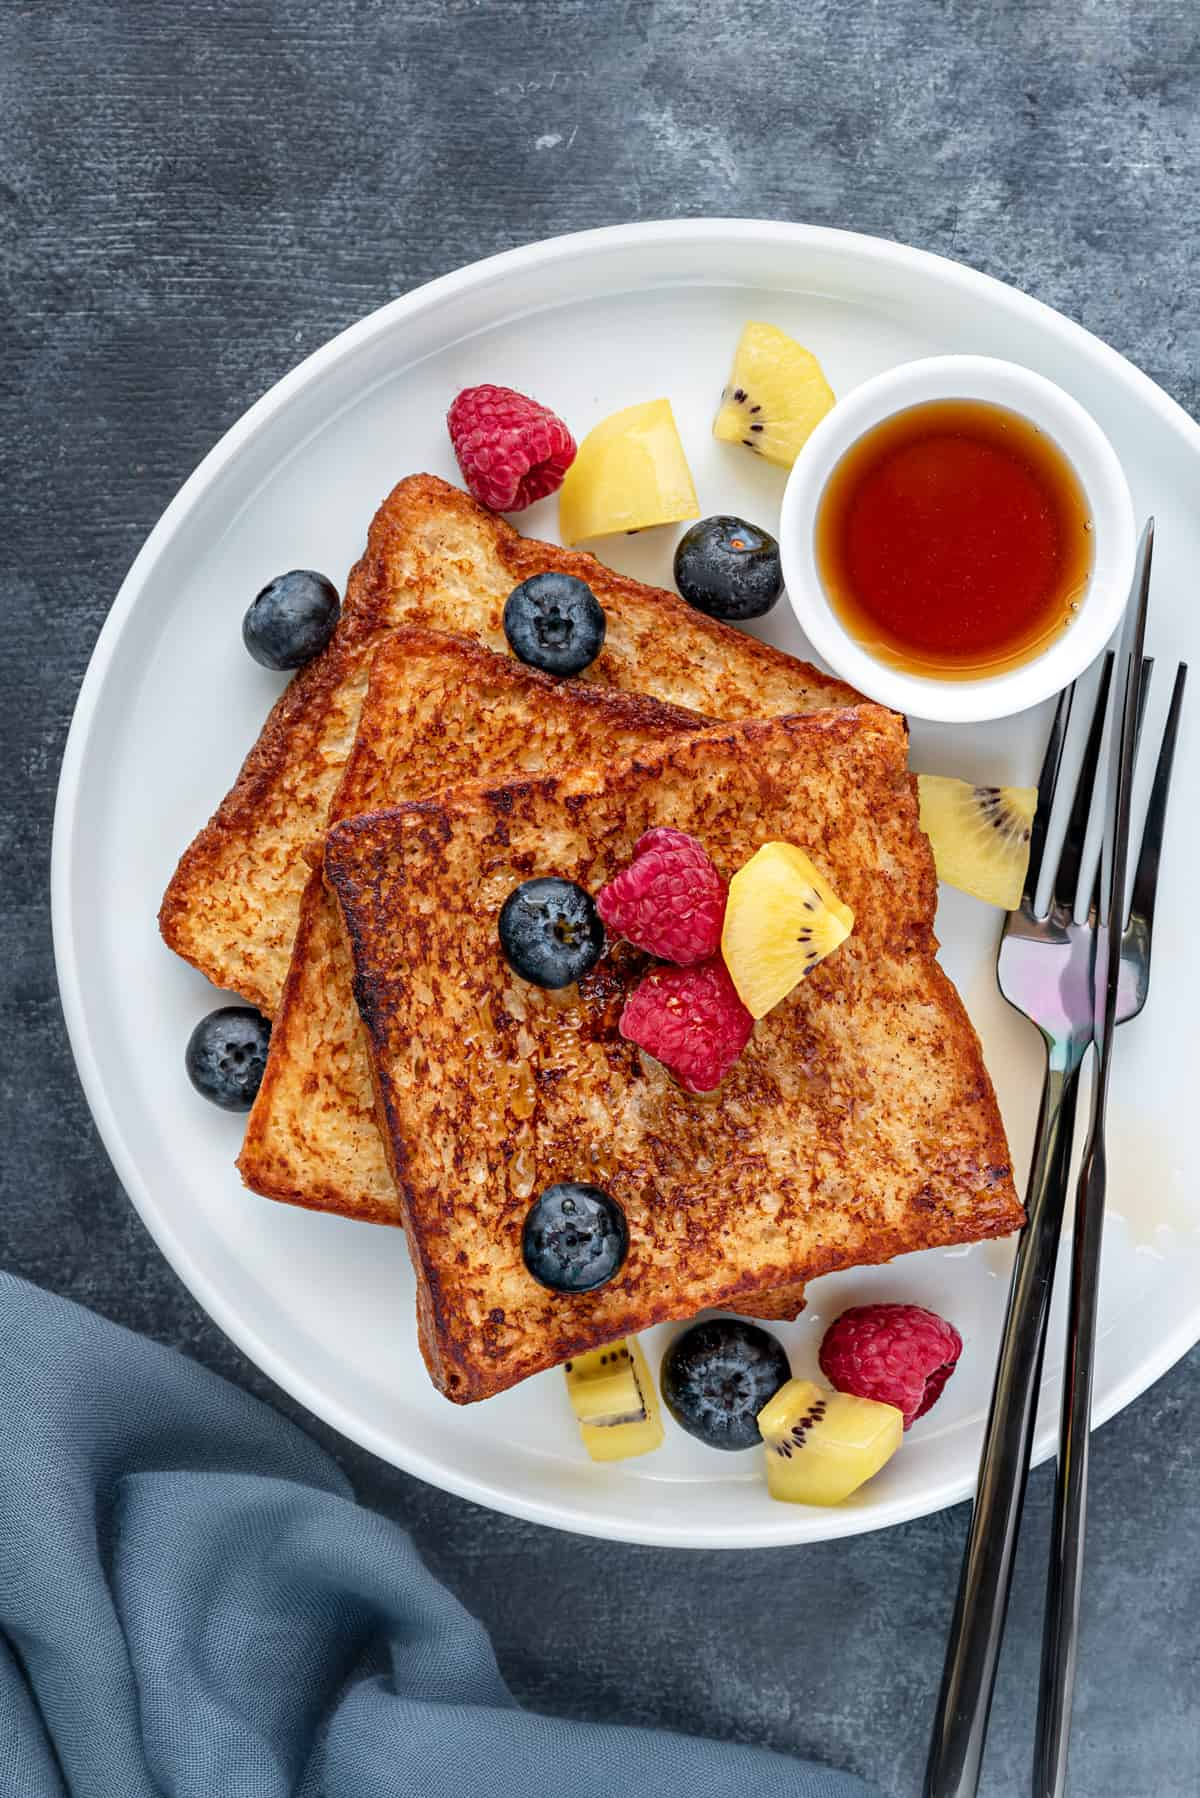 Classic brioche french toast on a round white plate with silverware, maple syrup and fresh fruits.